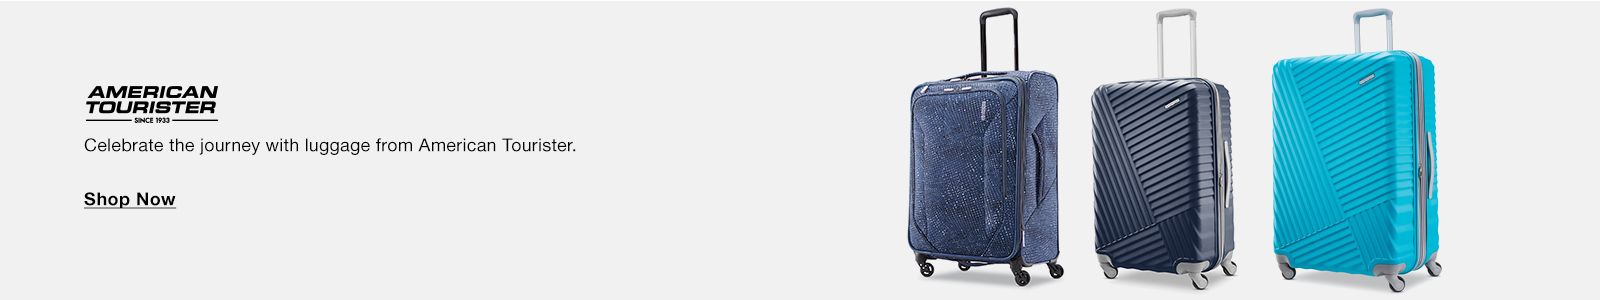 American Tourister, Celebrate the journey with luggage from American Tourister, Shop Now